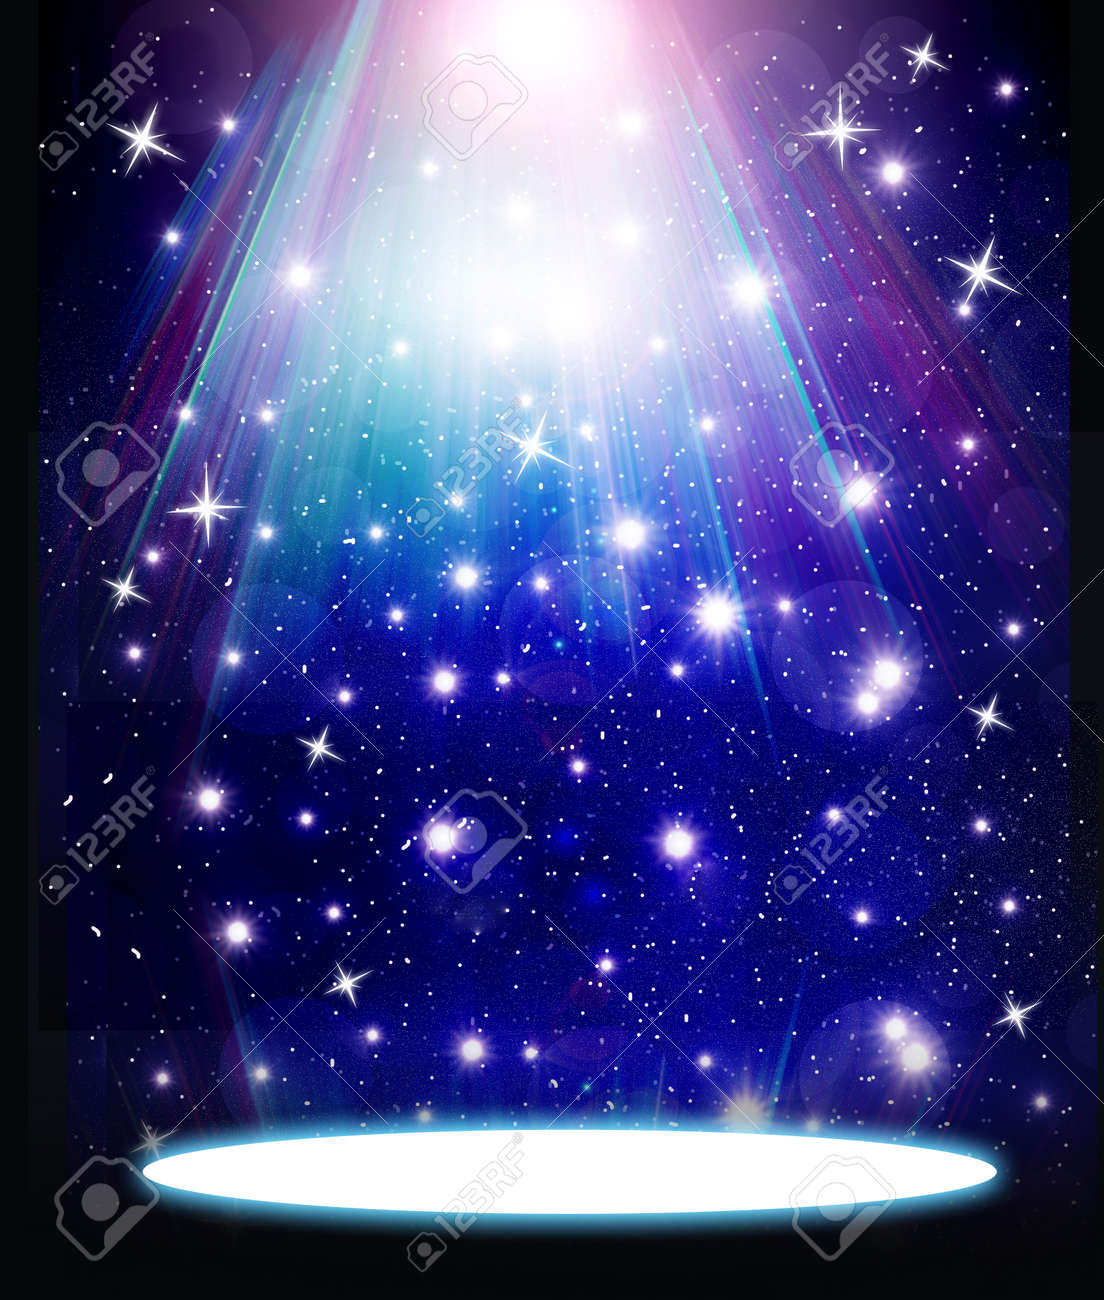 stars are falling on the background of blue luminous rays. Stock Photo - 17005009